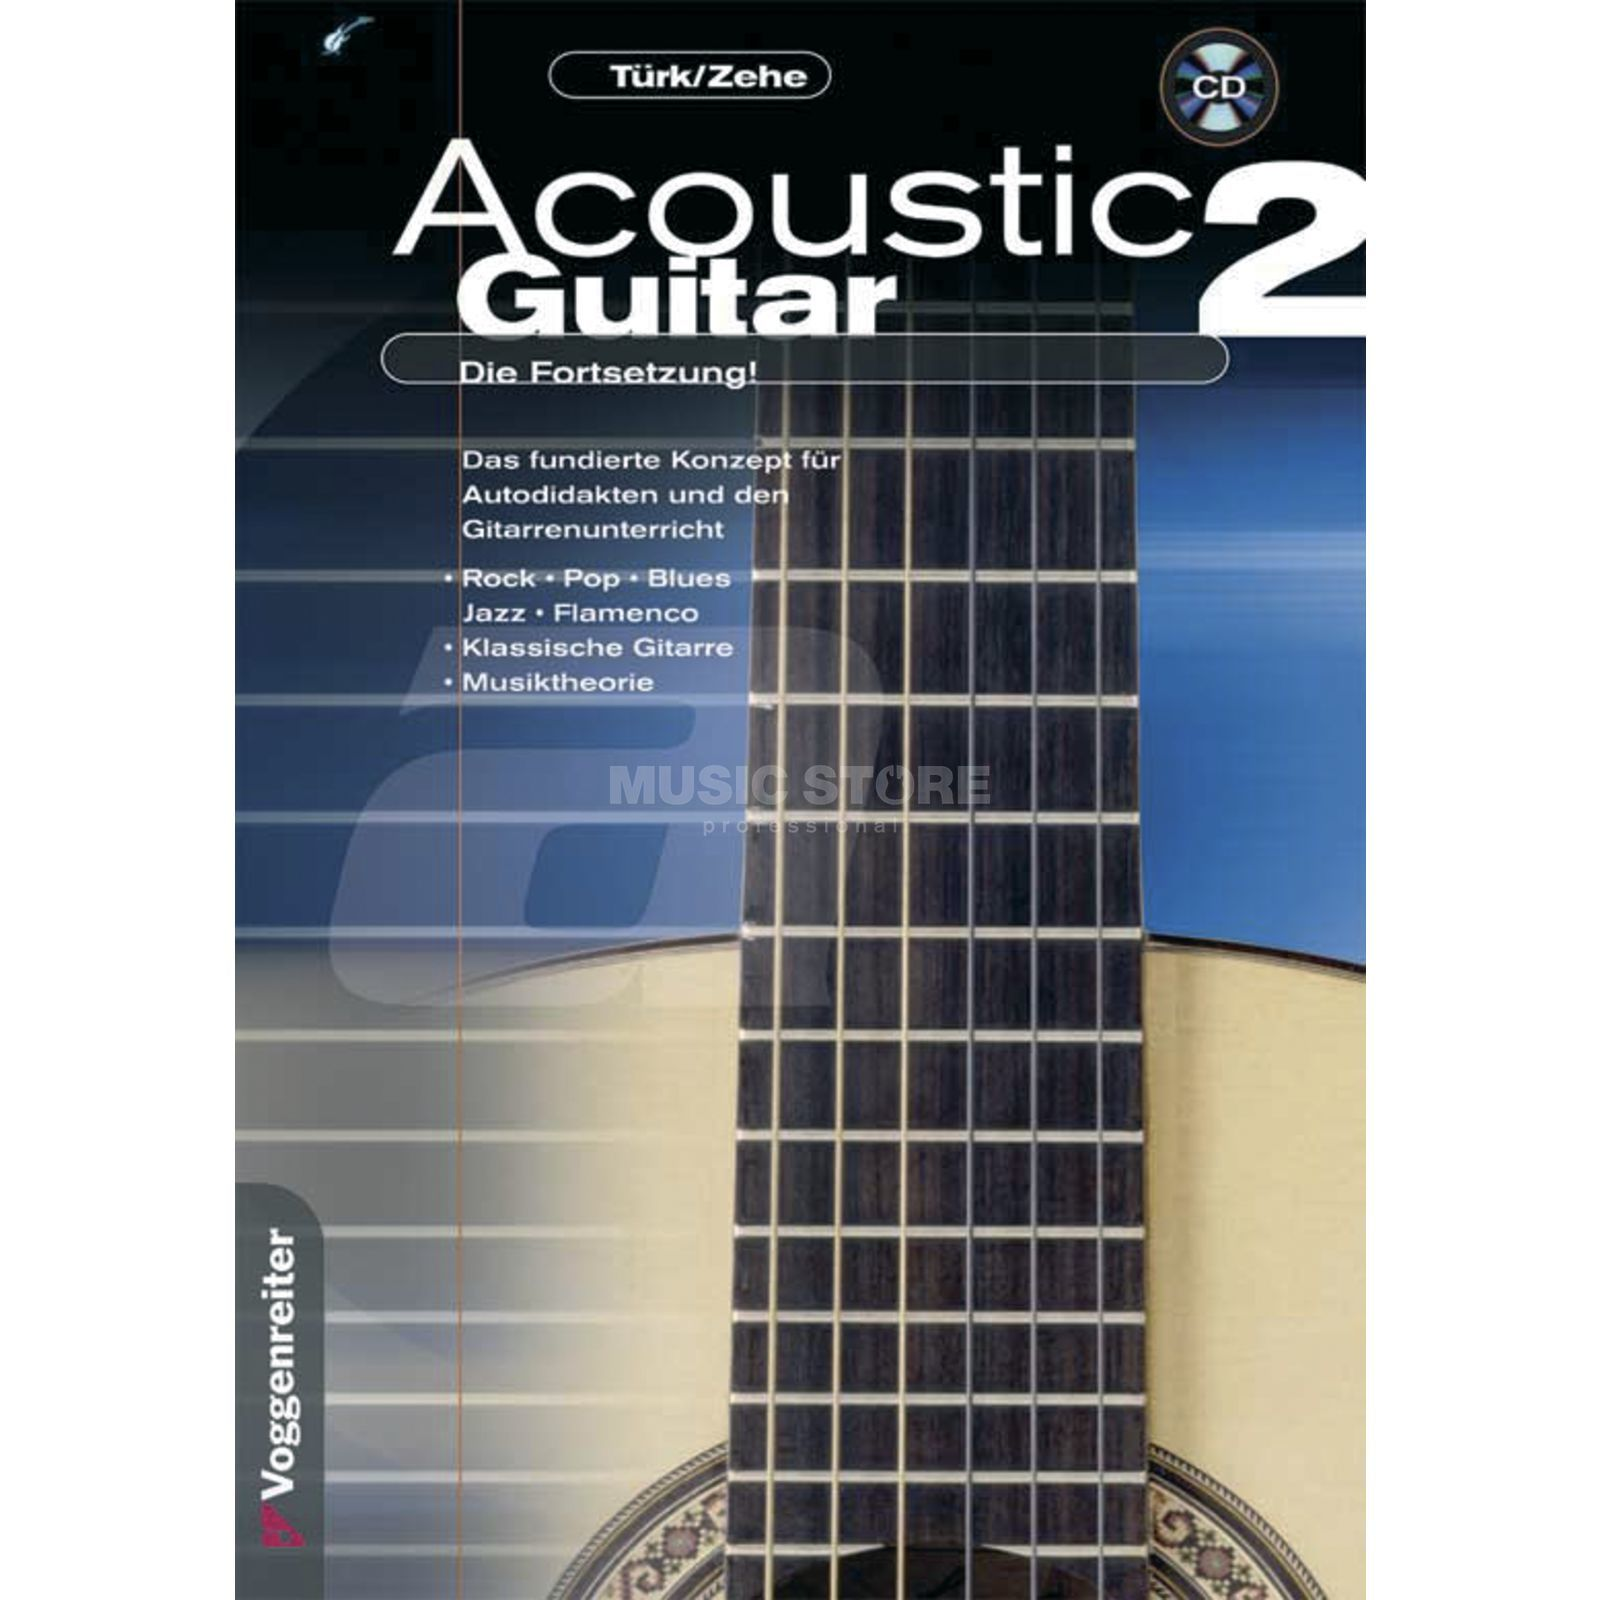 Voggenreiter Acoustic Guitar 2 Product Image